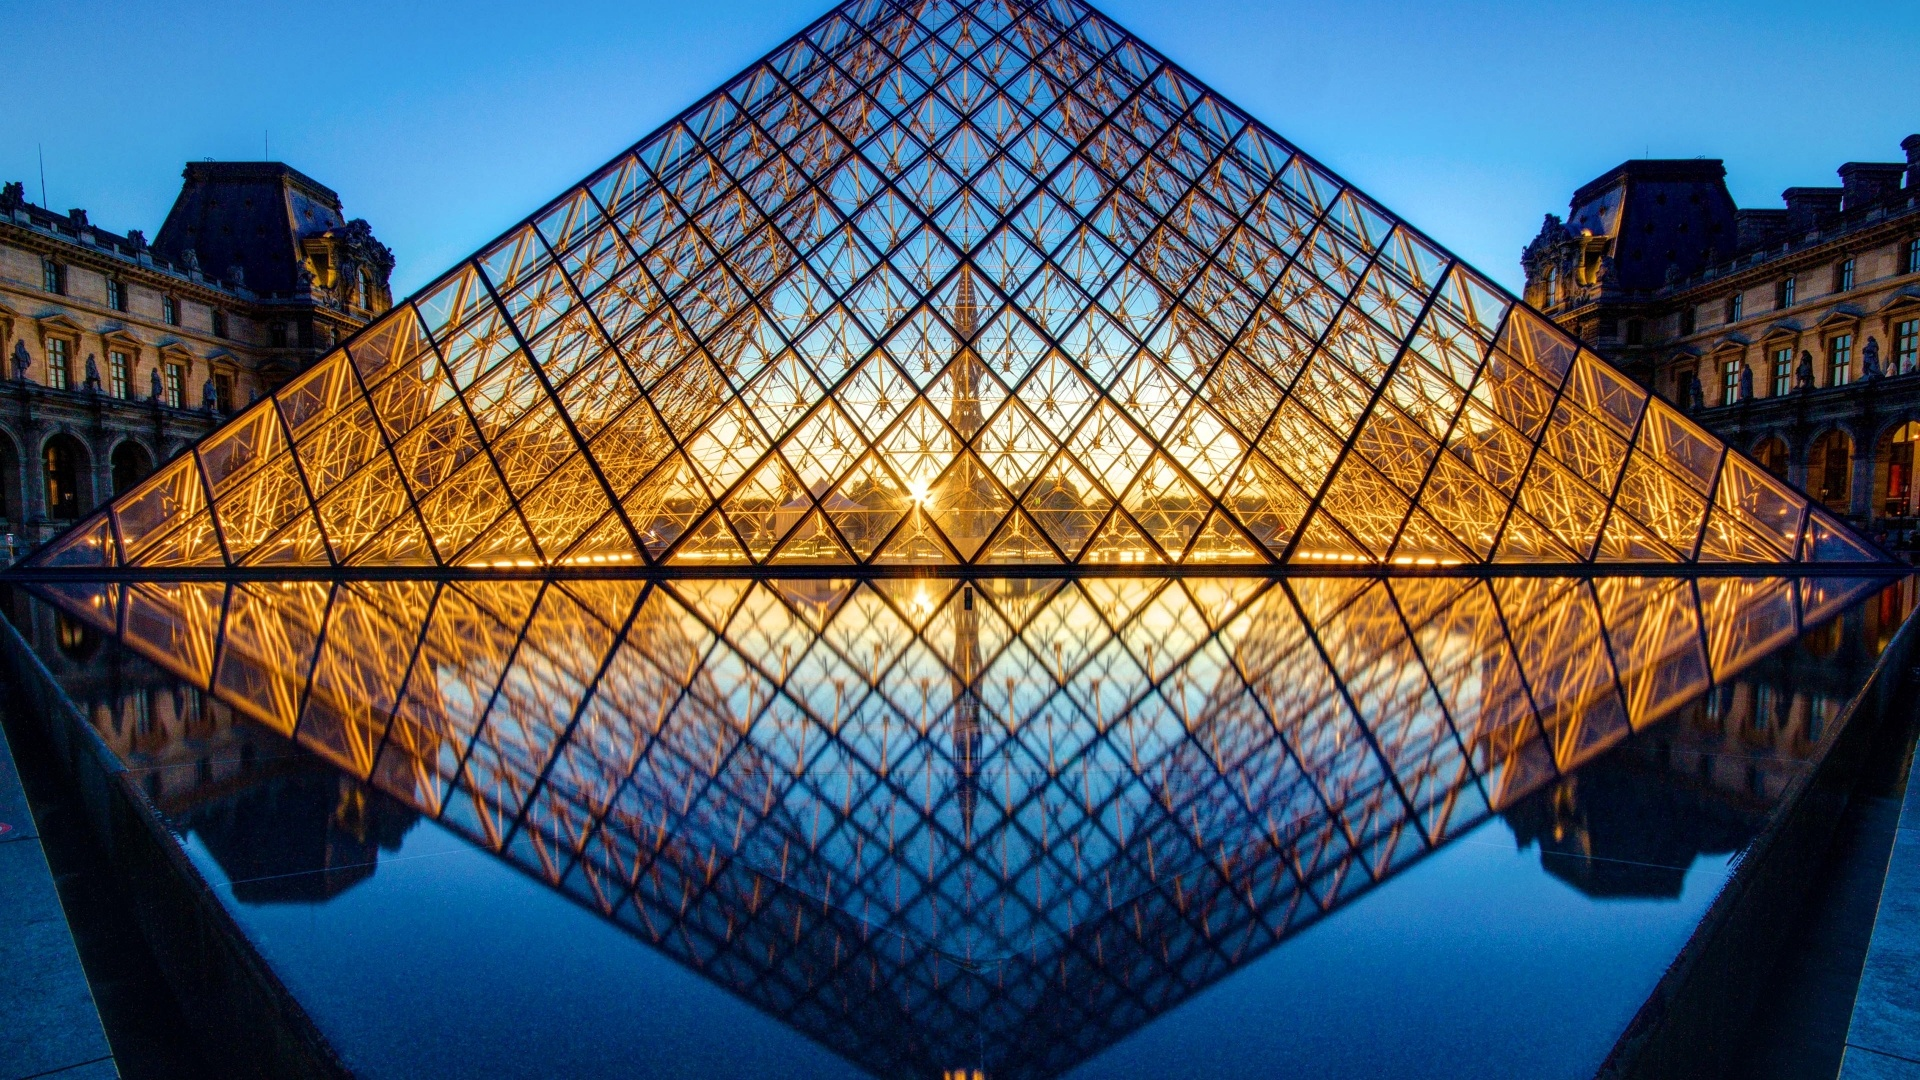 Louvre Museum wallpaper hd